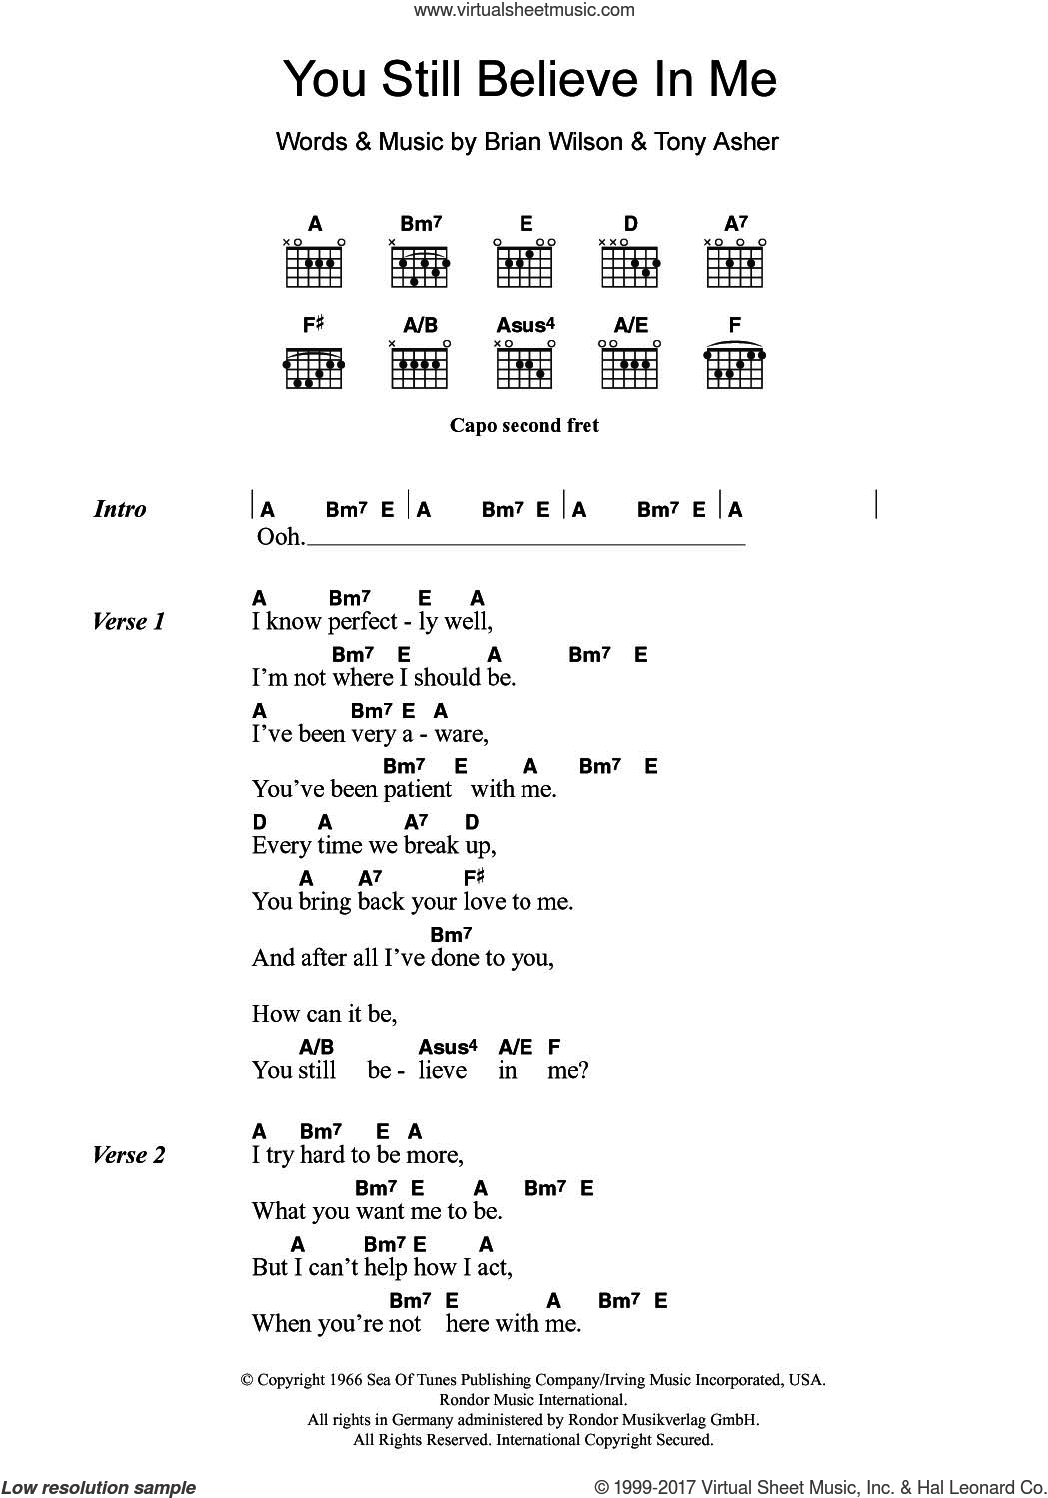 You Still Believe In Me sheet music for guitar (chords) by The Beach Boys, Brian Wilson and Tony Asher, intermediate skill level